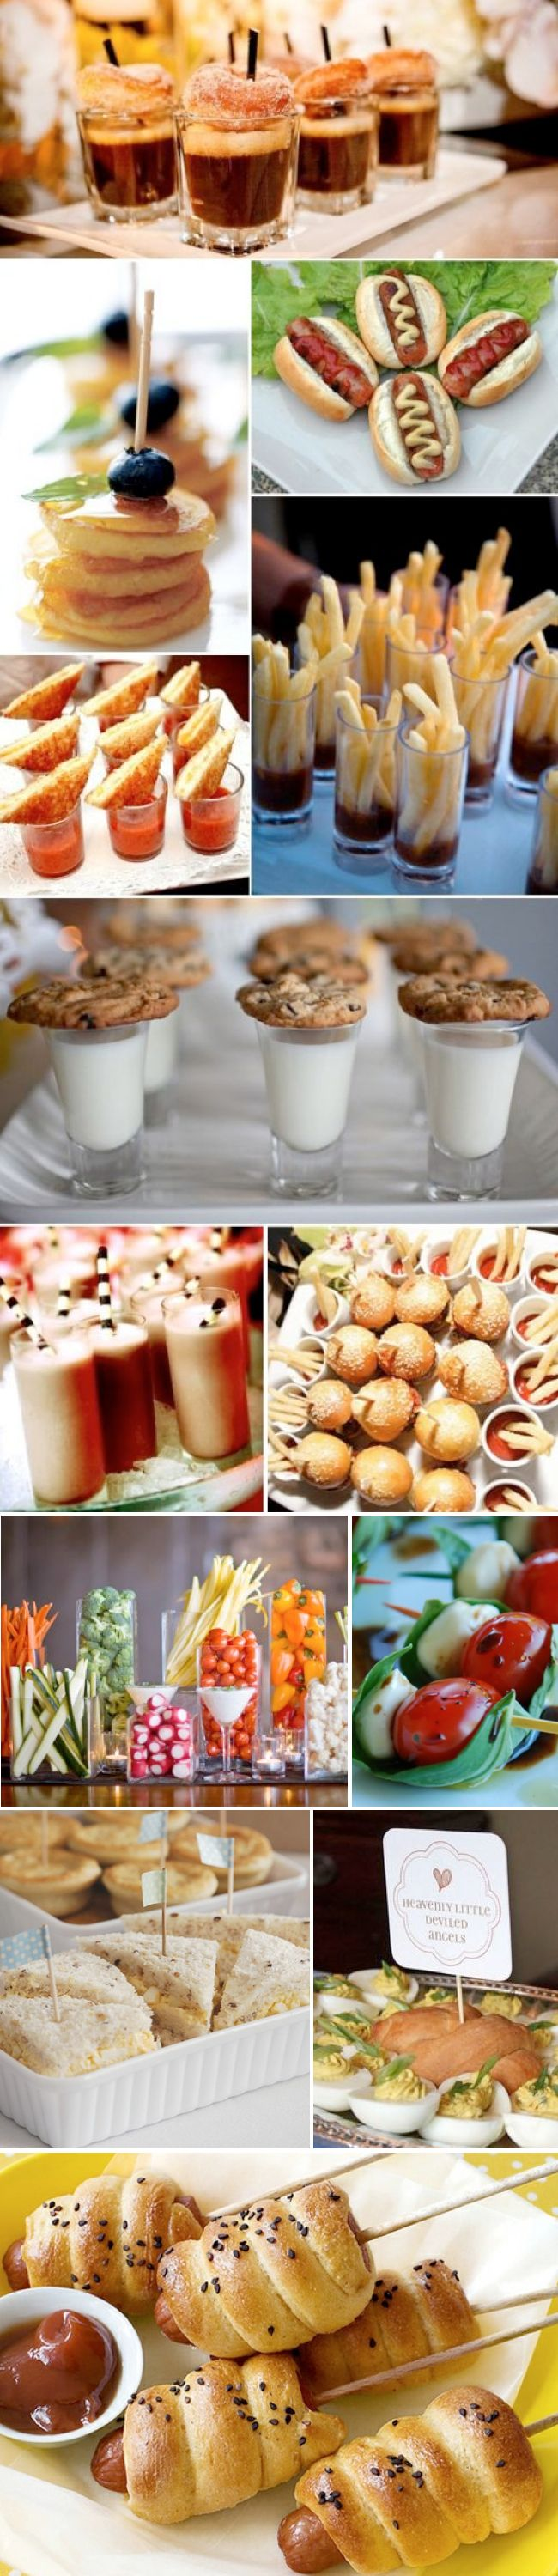 Fantastic Buffet Menu Ideas